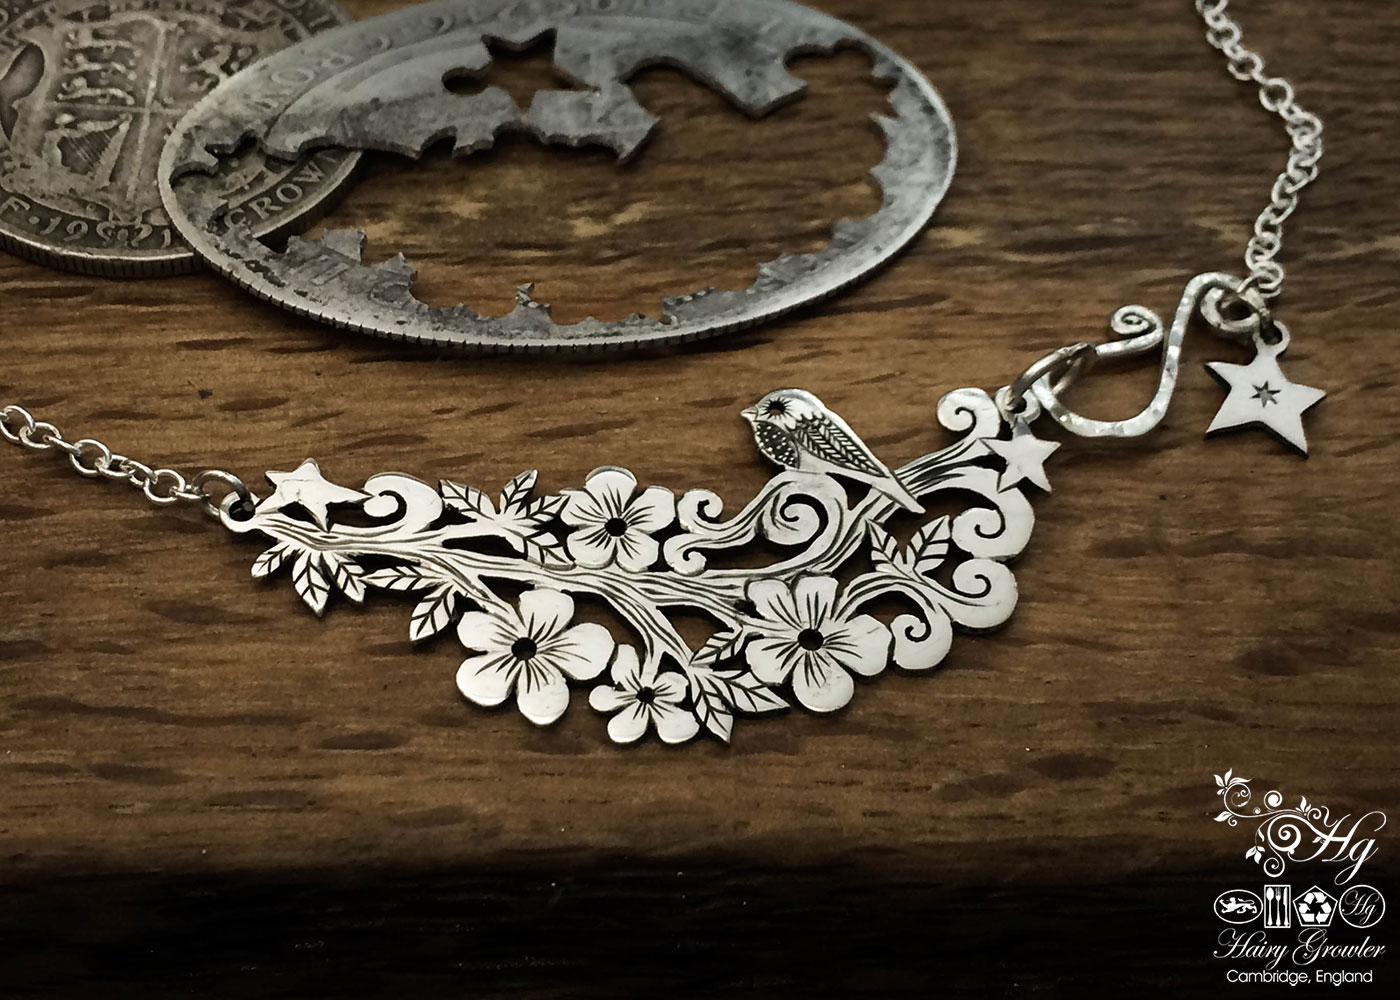 Handcrafted and recycled sterling silver 'Tweet me' necklace